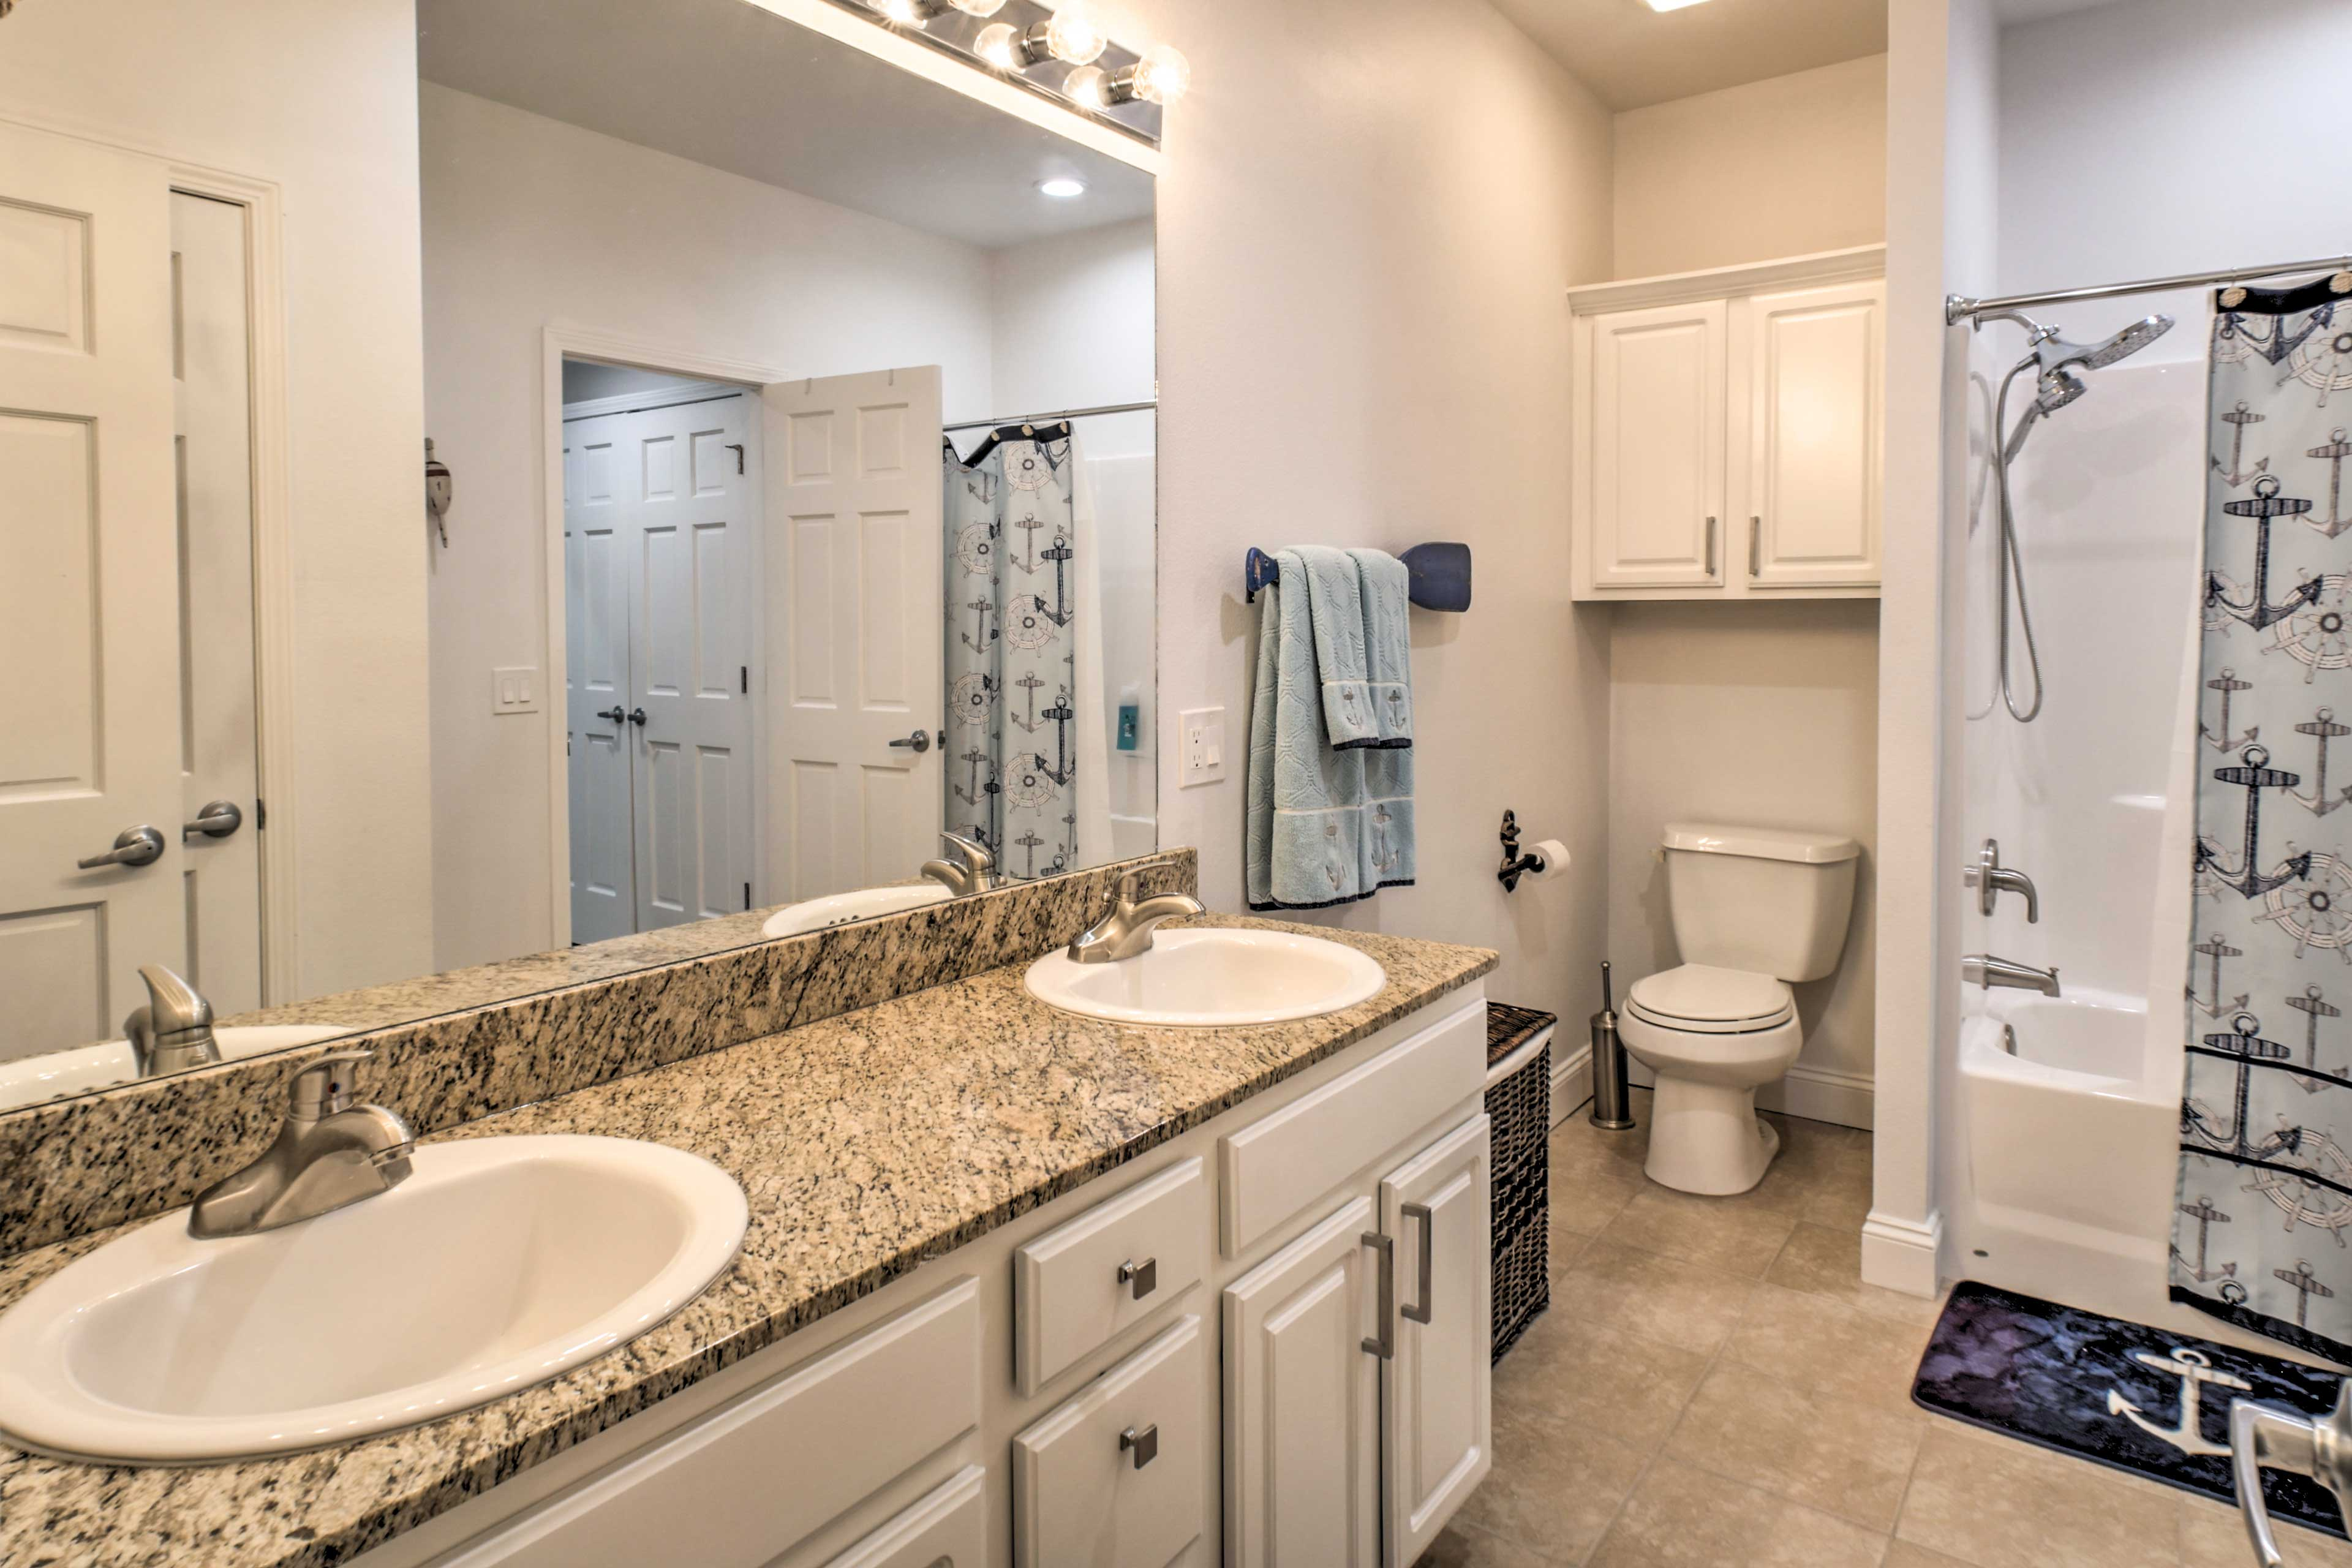 The second ensuite bathroom features dual sinks and a shower/tub combo.